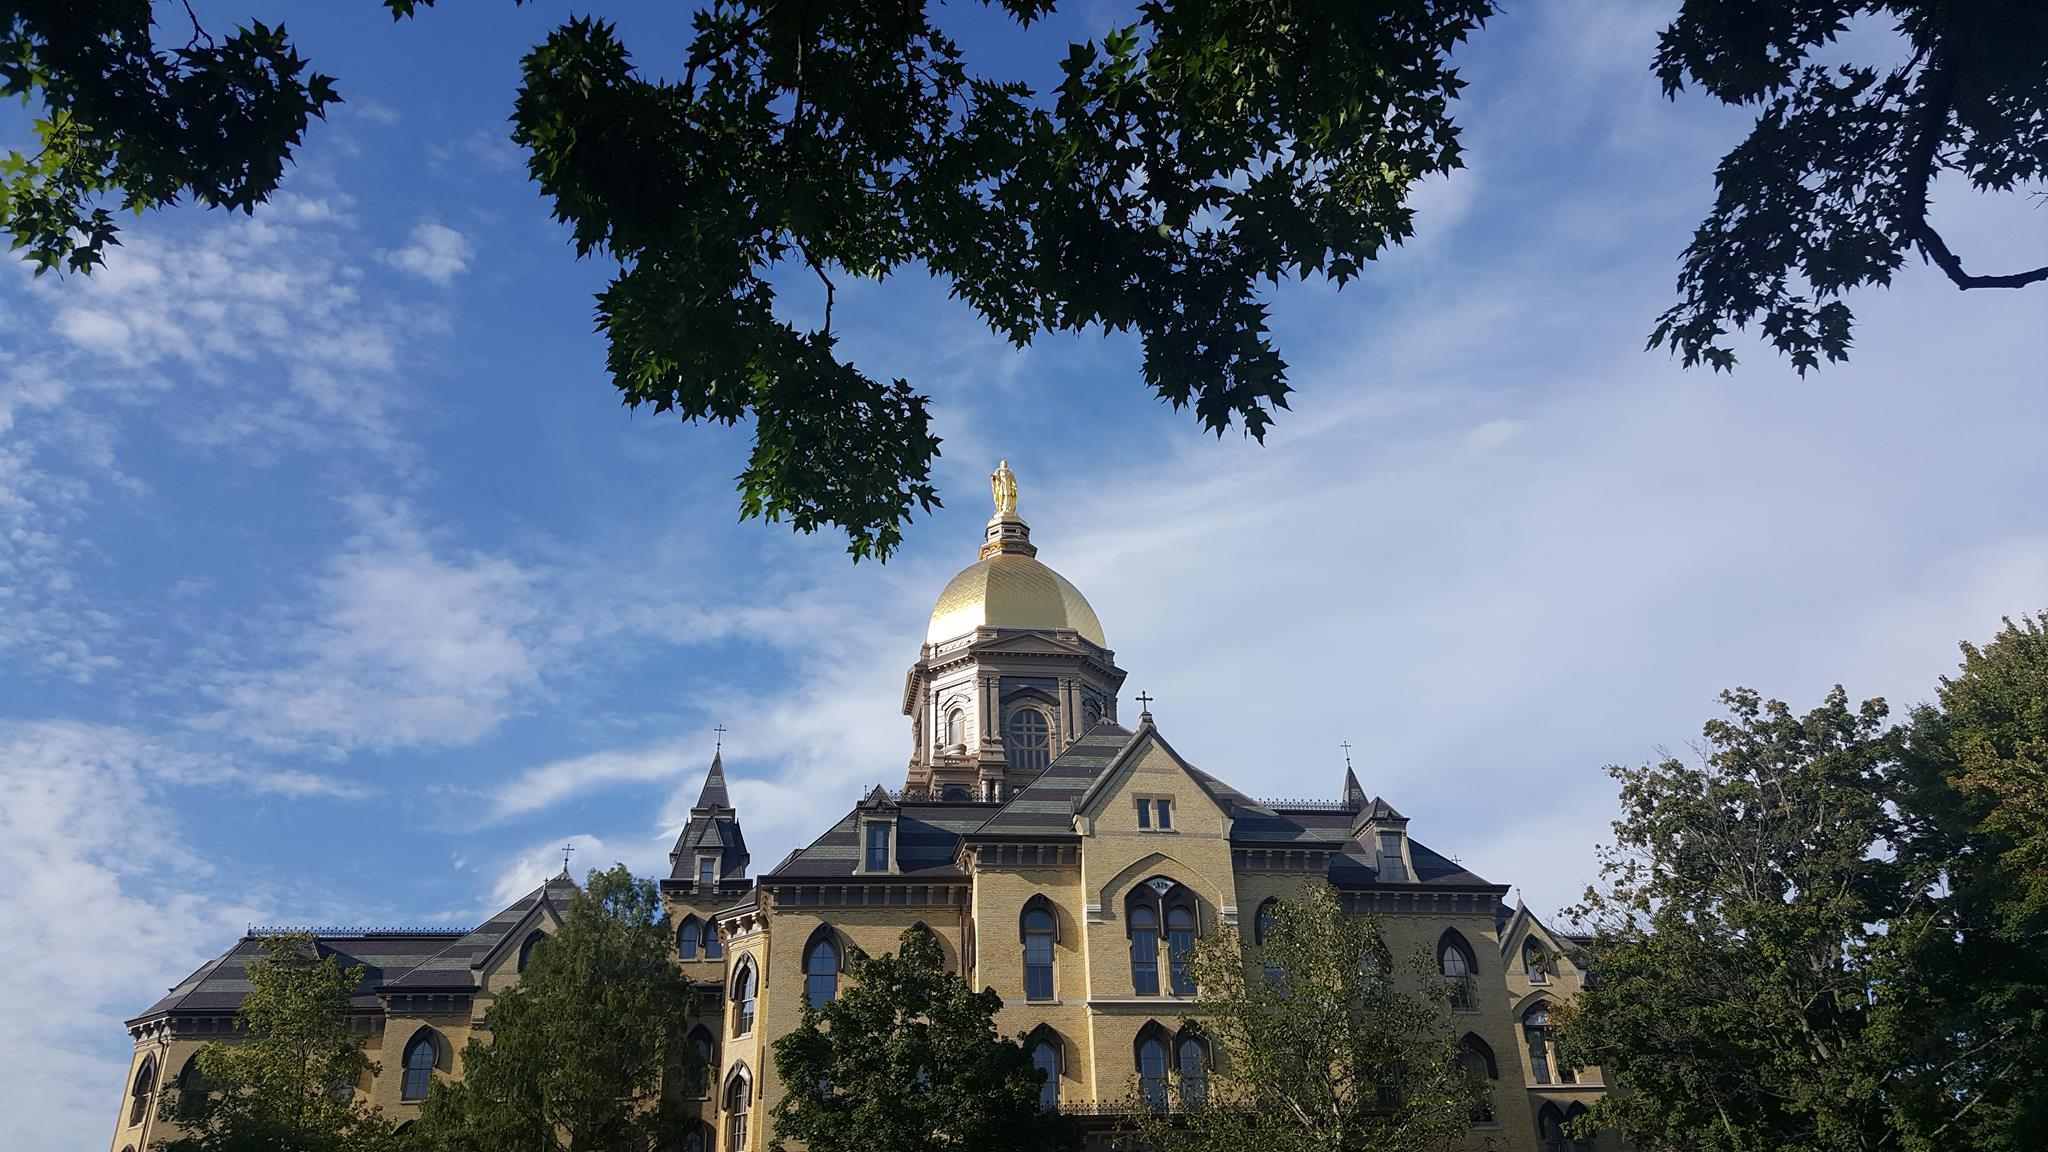 The Golden Dome of the Main Administration Building at Notre Dame